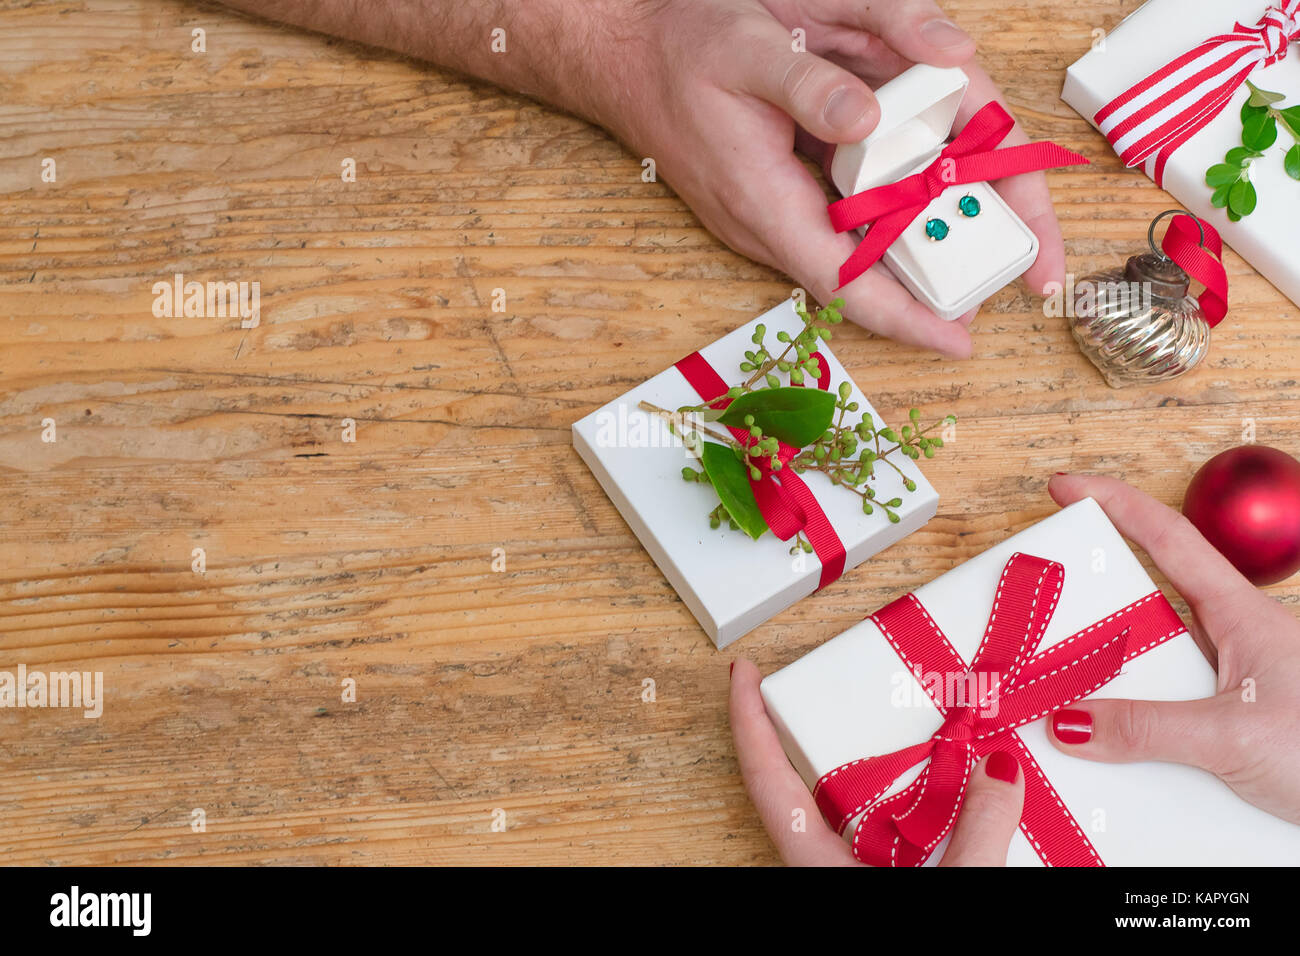 Romantic couple exchanges holiday Christmas gifts on a wooden table with Christmas decorations with room for copy Stock Photo